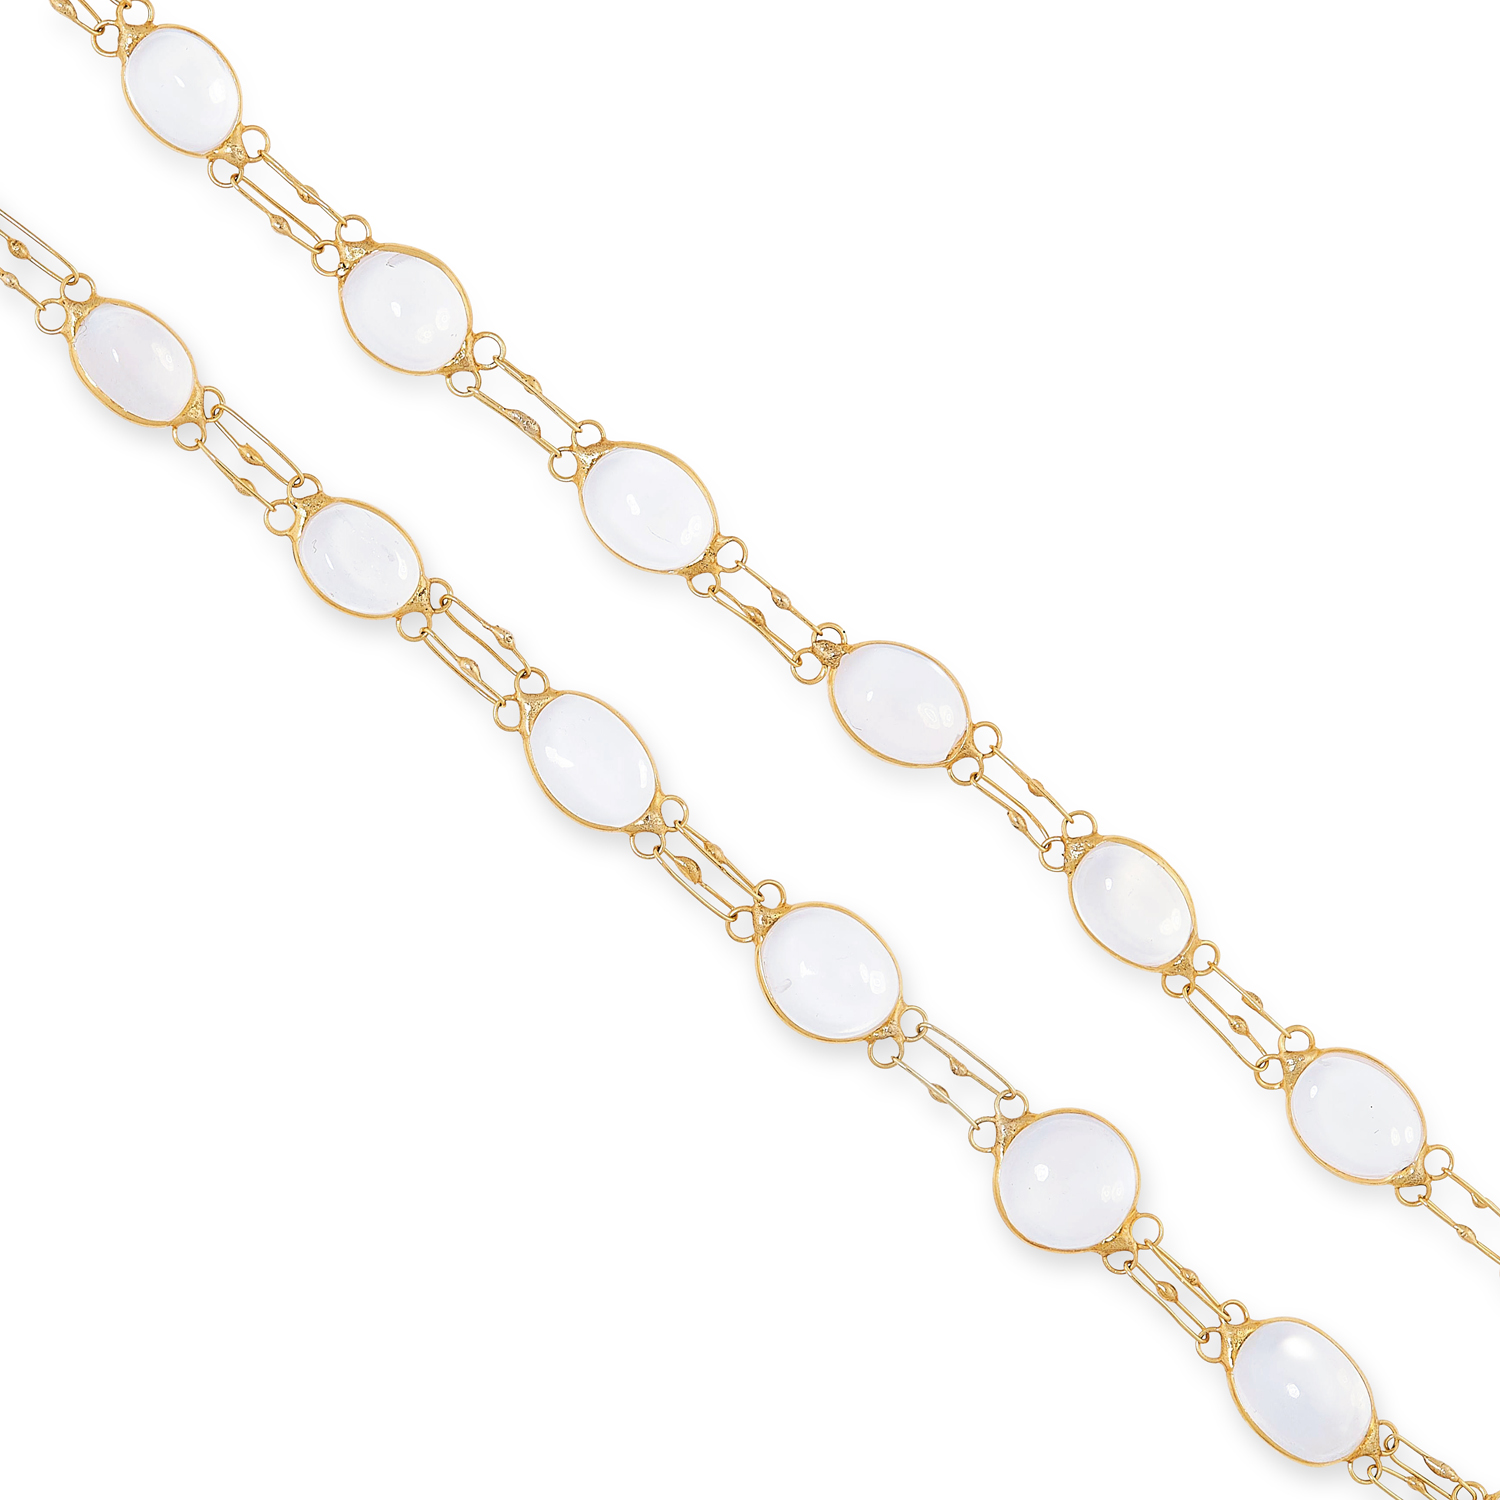 A MOONSTONE NECKLACE AND BRACELET SUITE each set with cabochon moonstones, tests as yellow gold, - Image 2 of 3